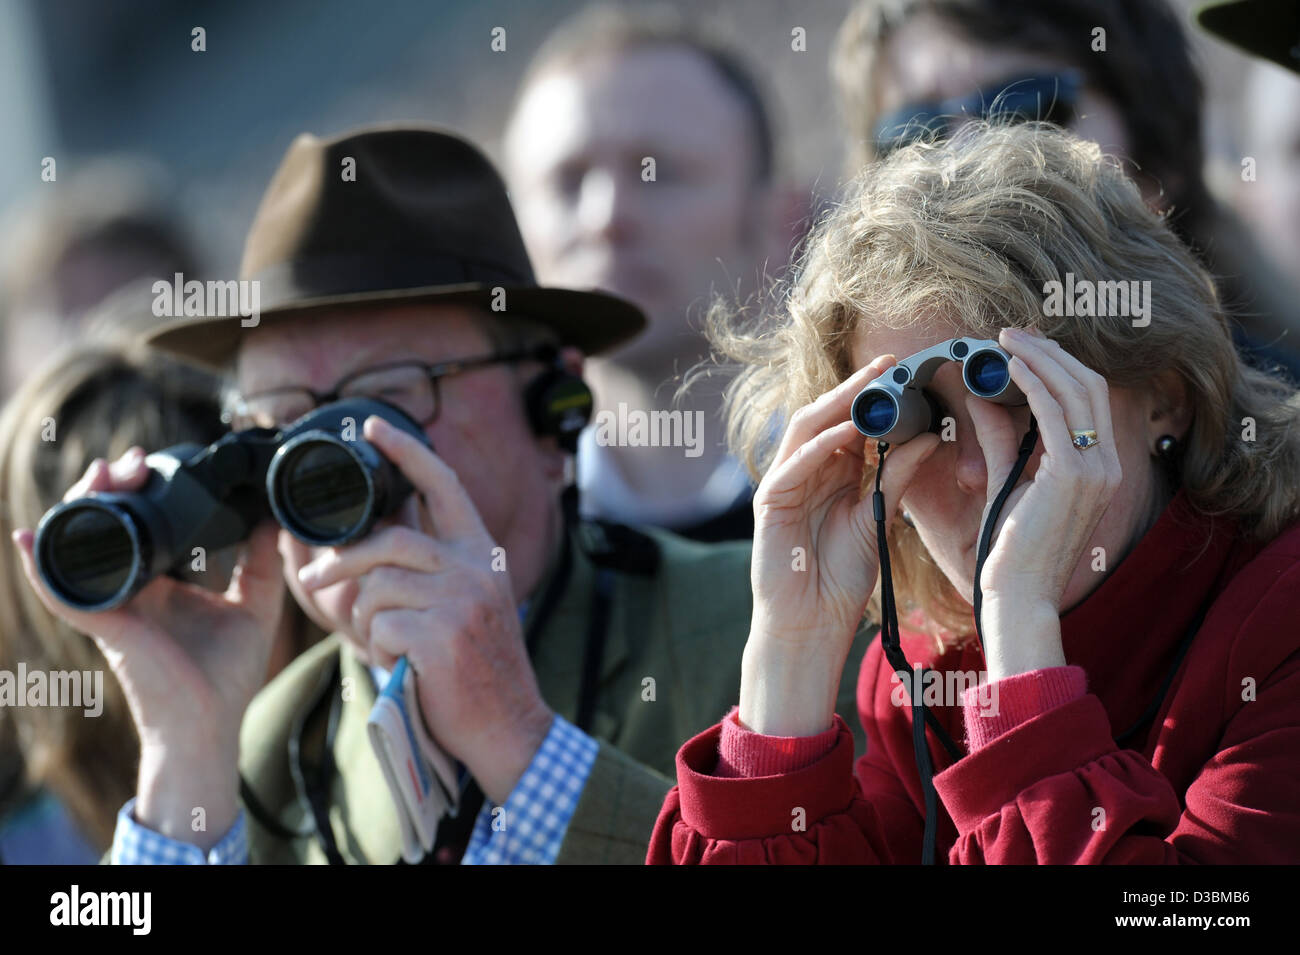 People watch the races through binoculars during the Cheltenham Festival an annual horse racing meeting. Stock Photo